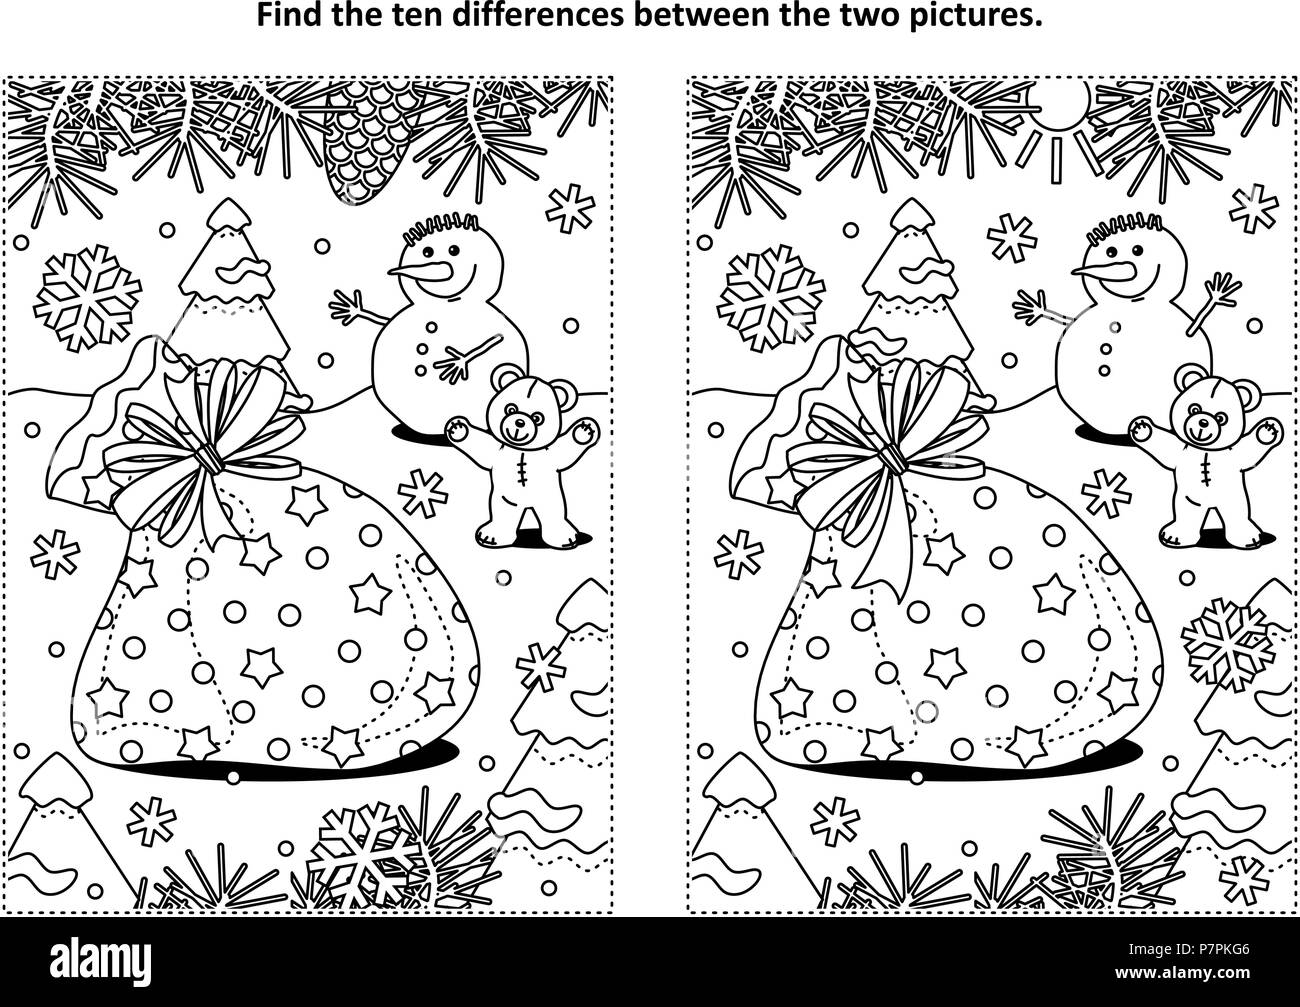 winter holidays themed find the ten differences picture puzzle and coloring page with santas sack teddy bear snowman